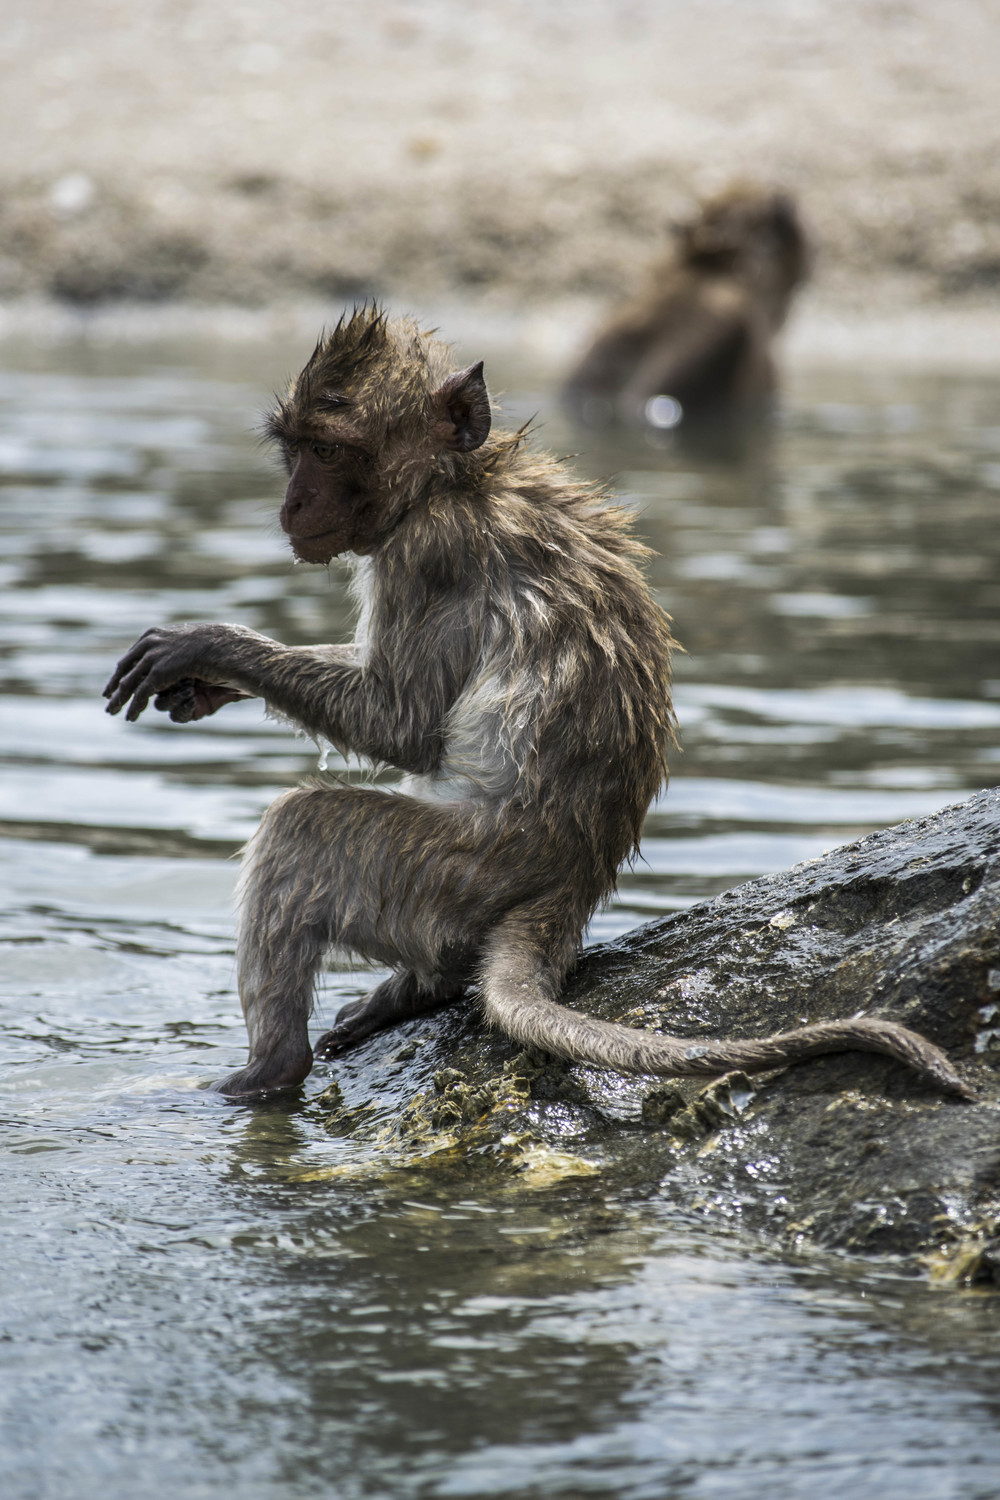 A young macaque goes for a swim